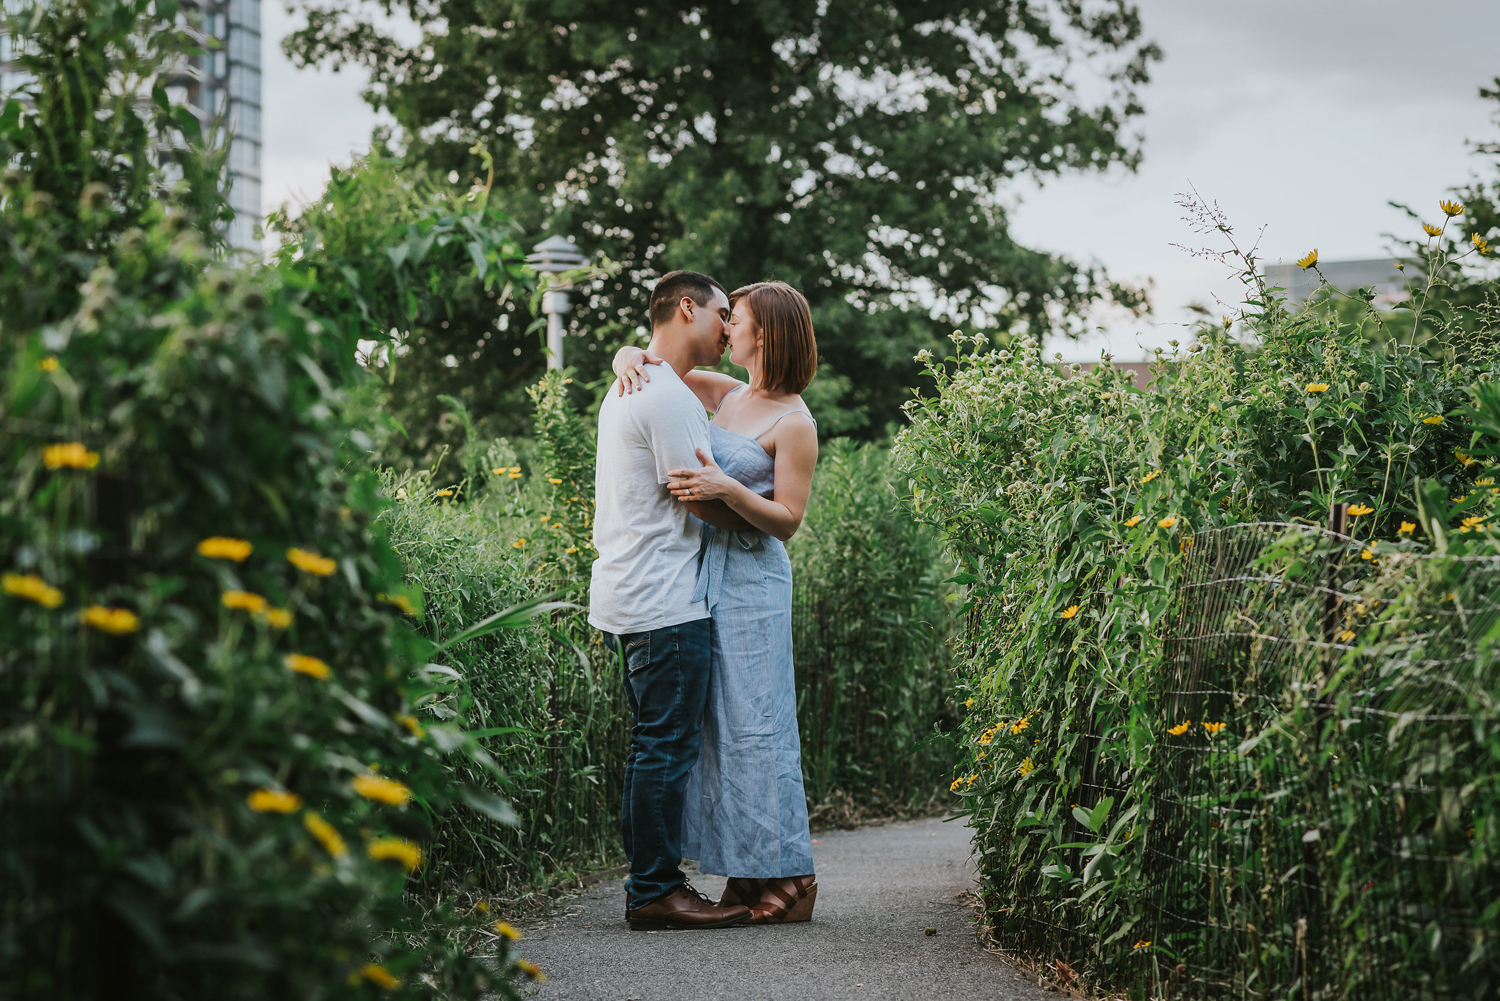 Alexis & Nate Transmitter Park Greenpoint Engagement NYC Brooklyn (22).jpg